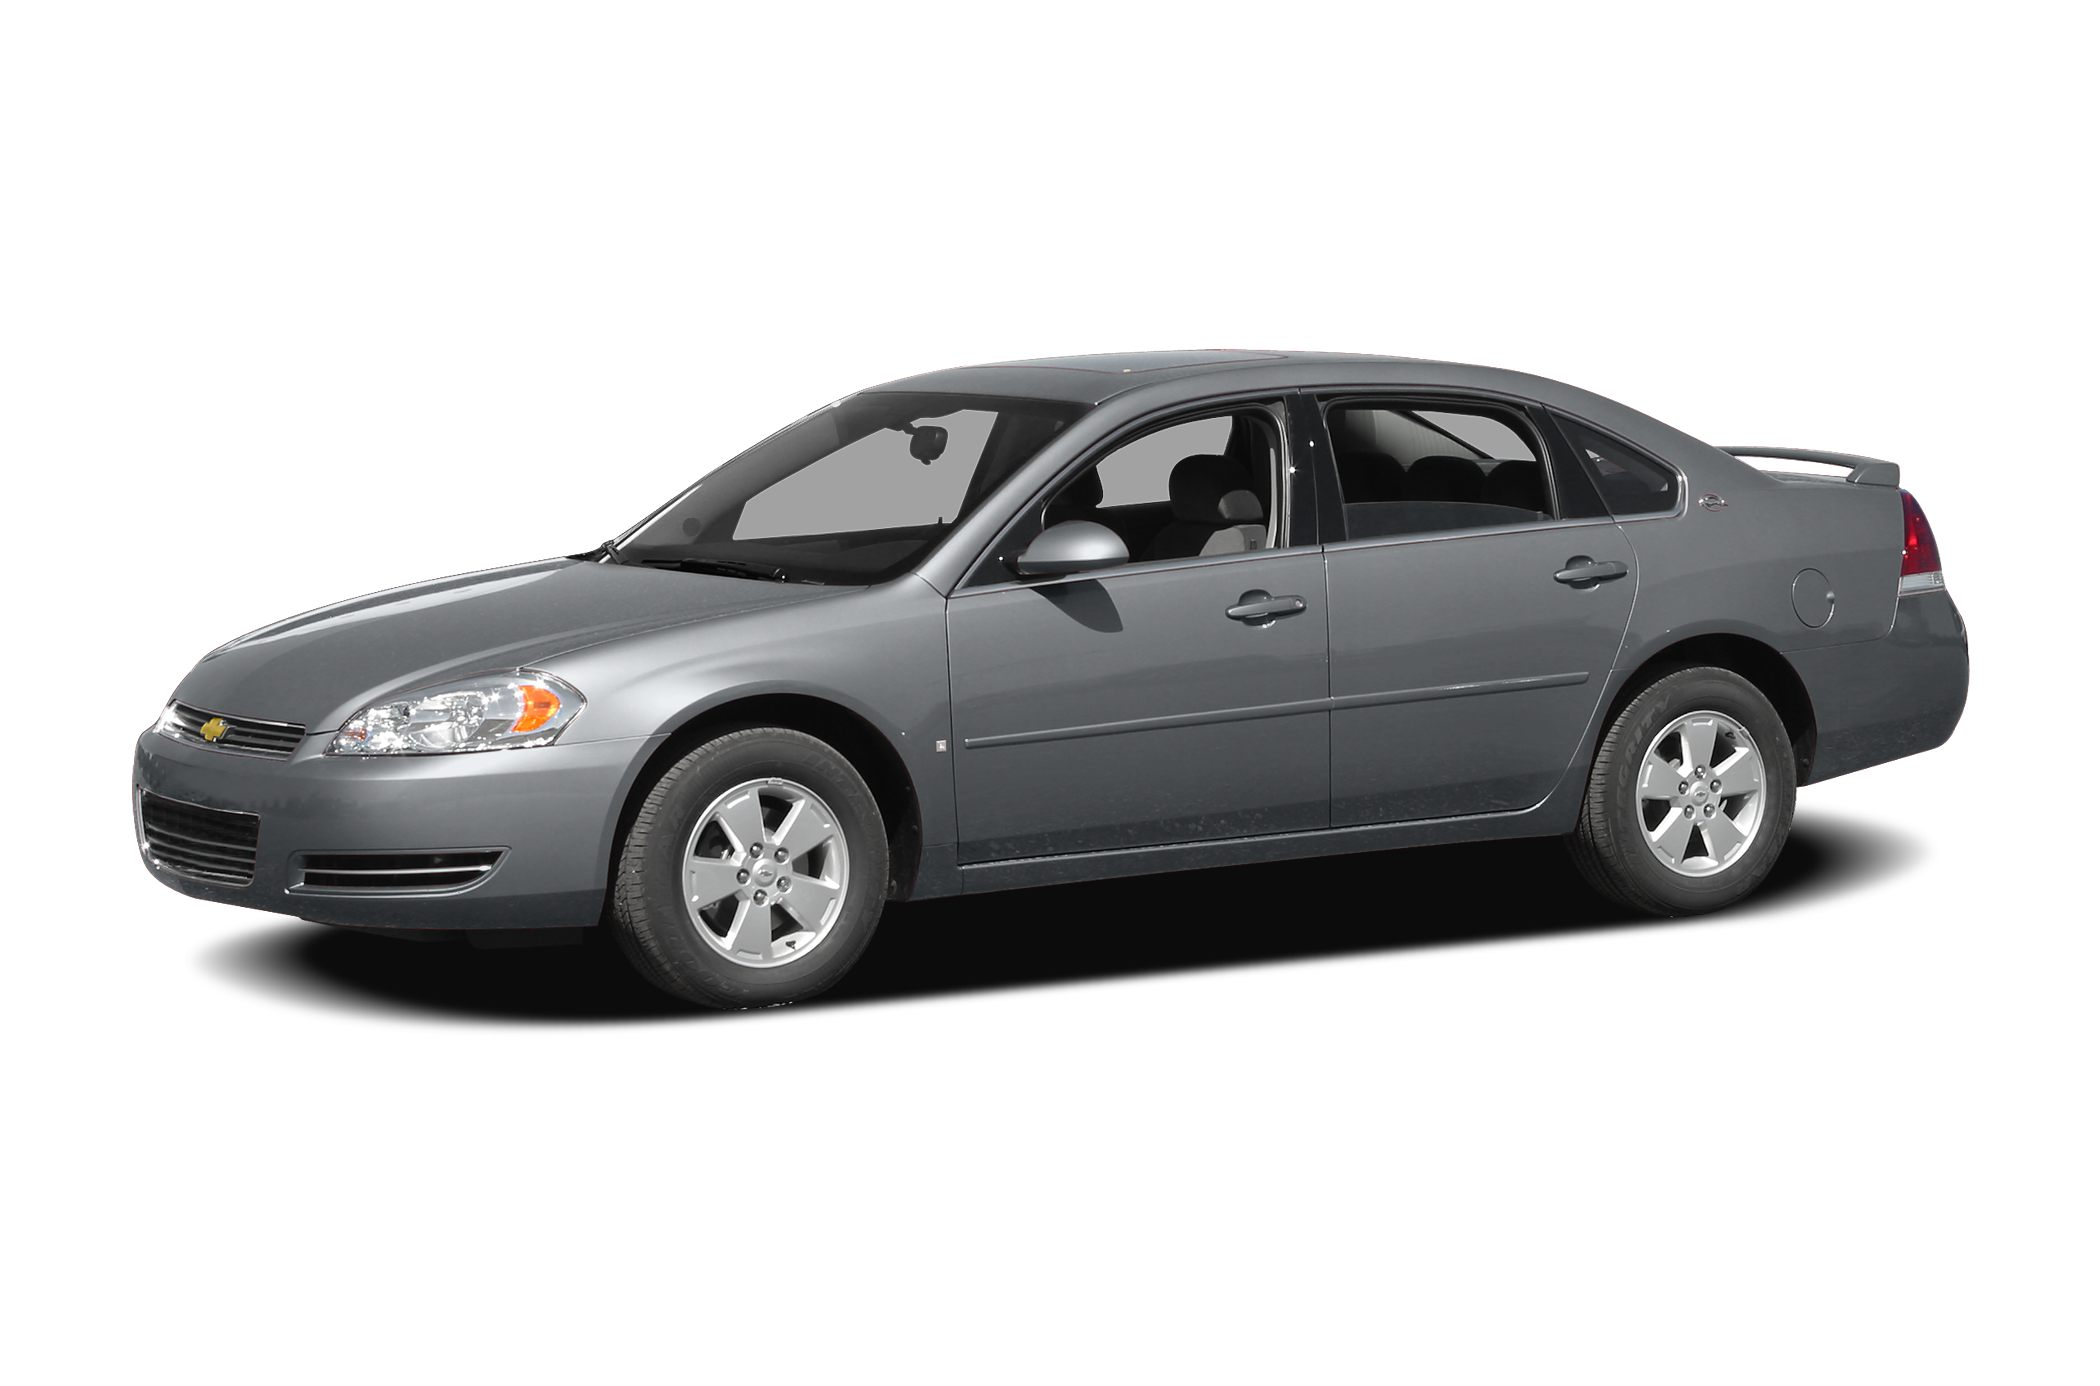 2008 Chevrolet Impala LT Sedan for sale in Dayton for $11,893 with 65,430 miles.